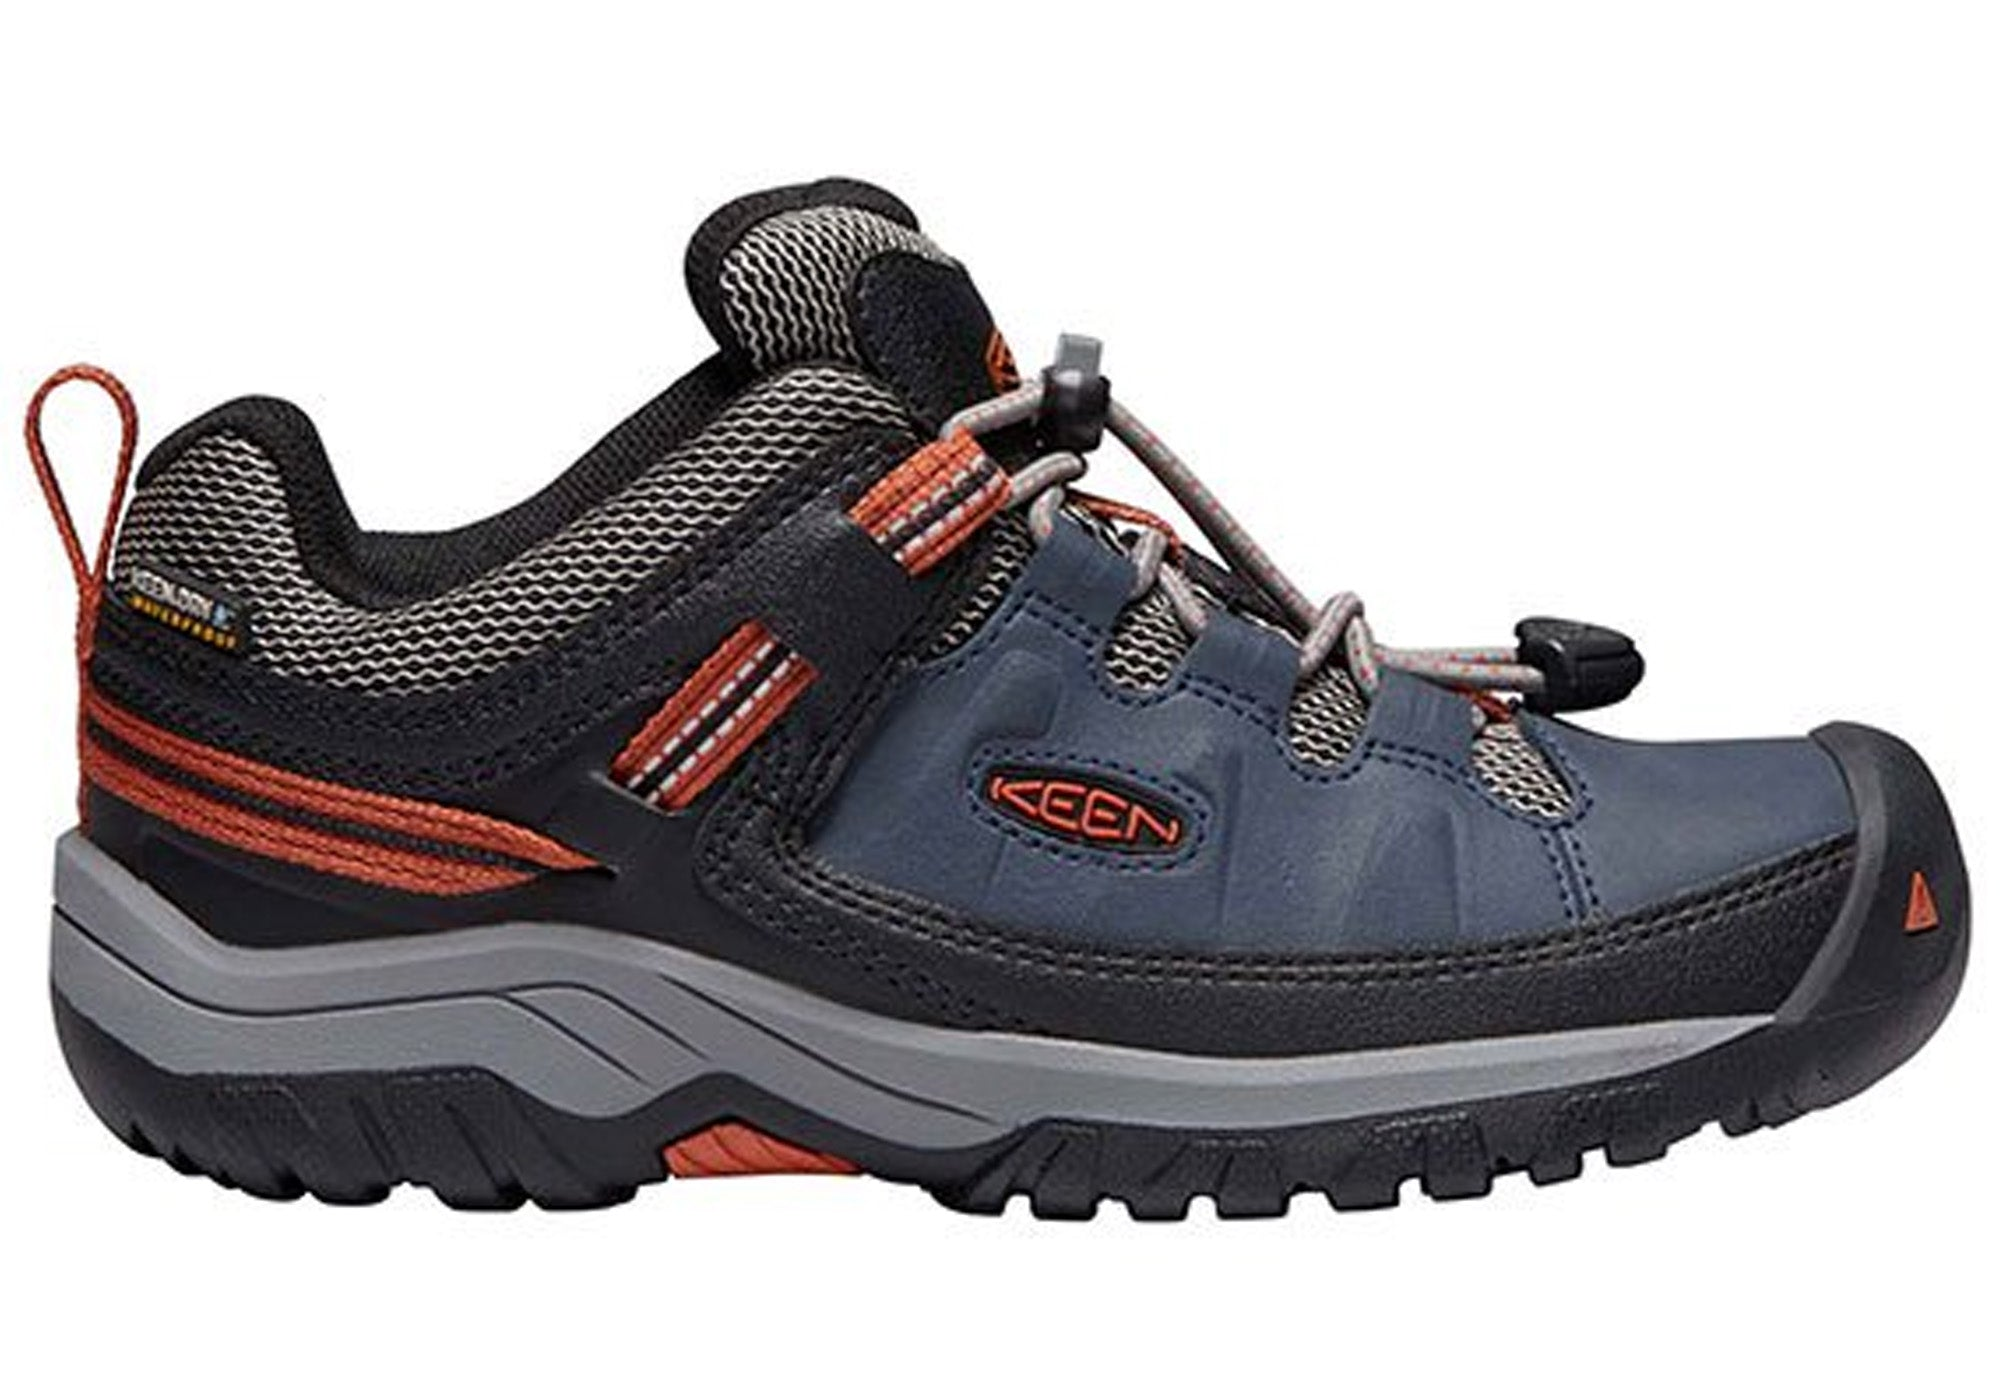 eee184417f2f Details about New Keen Targhee Low Wp Youths Older Kids Boys Comfortable  Durable Shoes